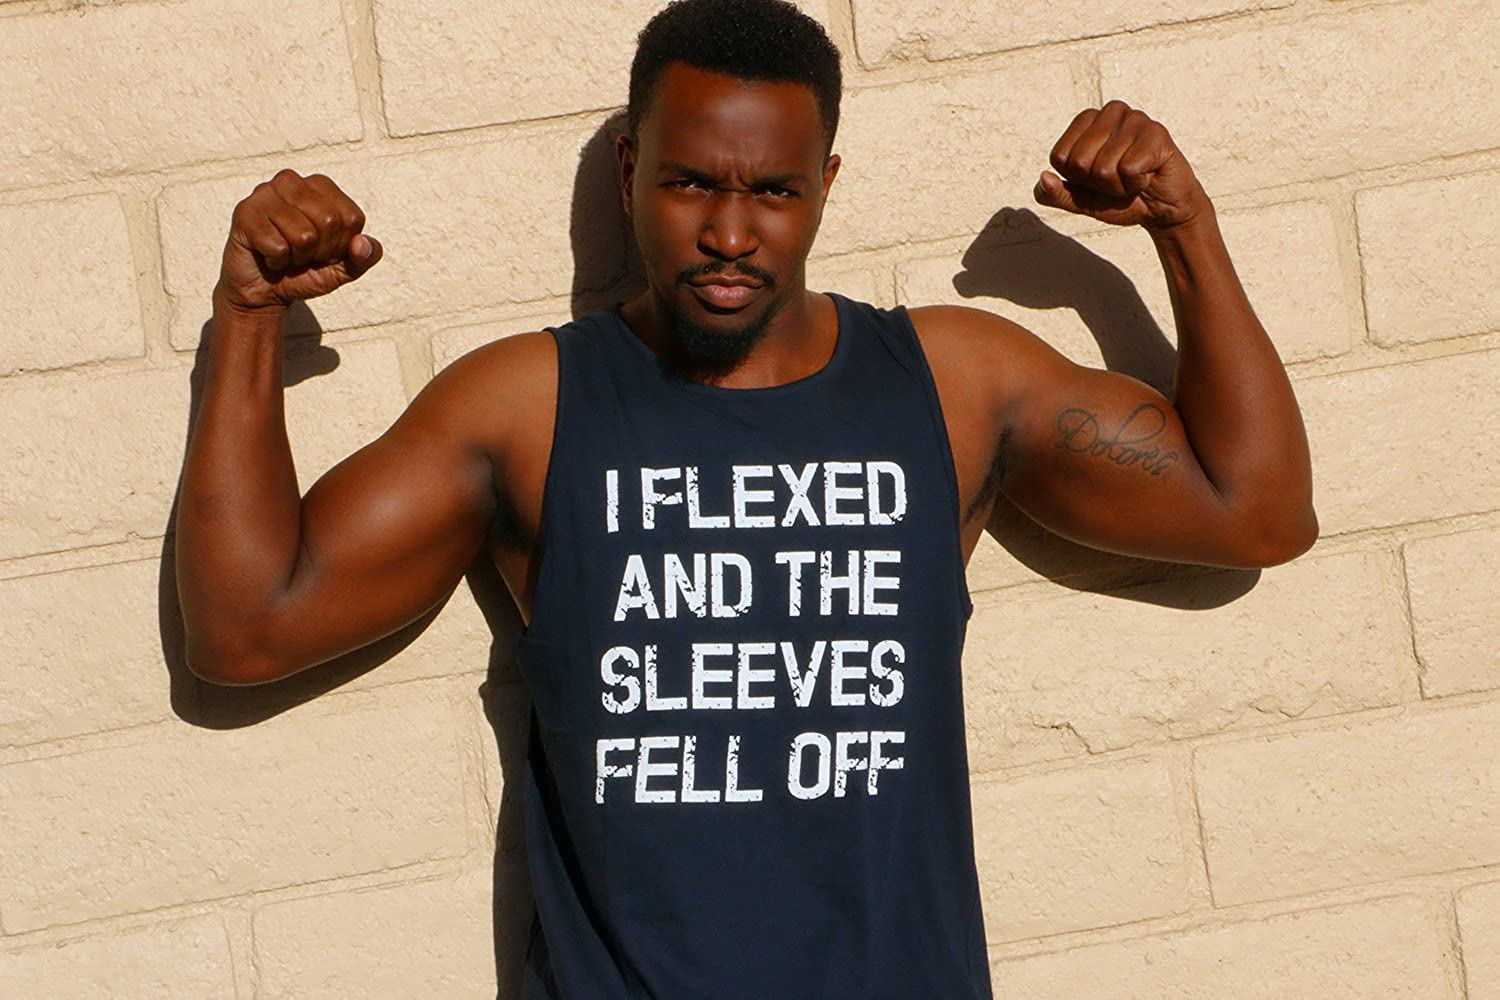 cf455f1a2a1da Amazon.com  Mens I Flexed and The Sleeves Fell Off Tank Top Funny  Sleeveless Gym Workout Shirt  Clothing